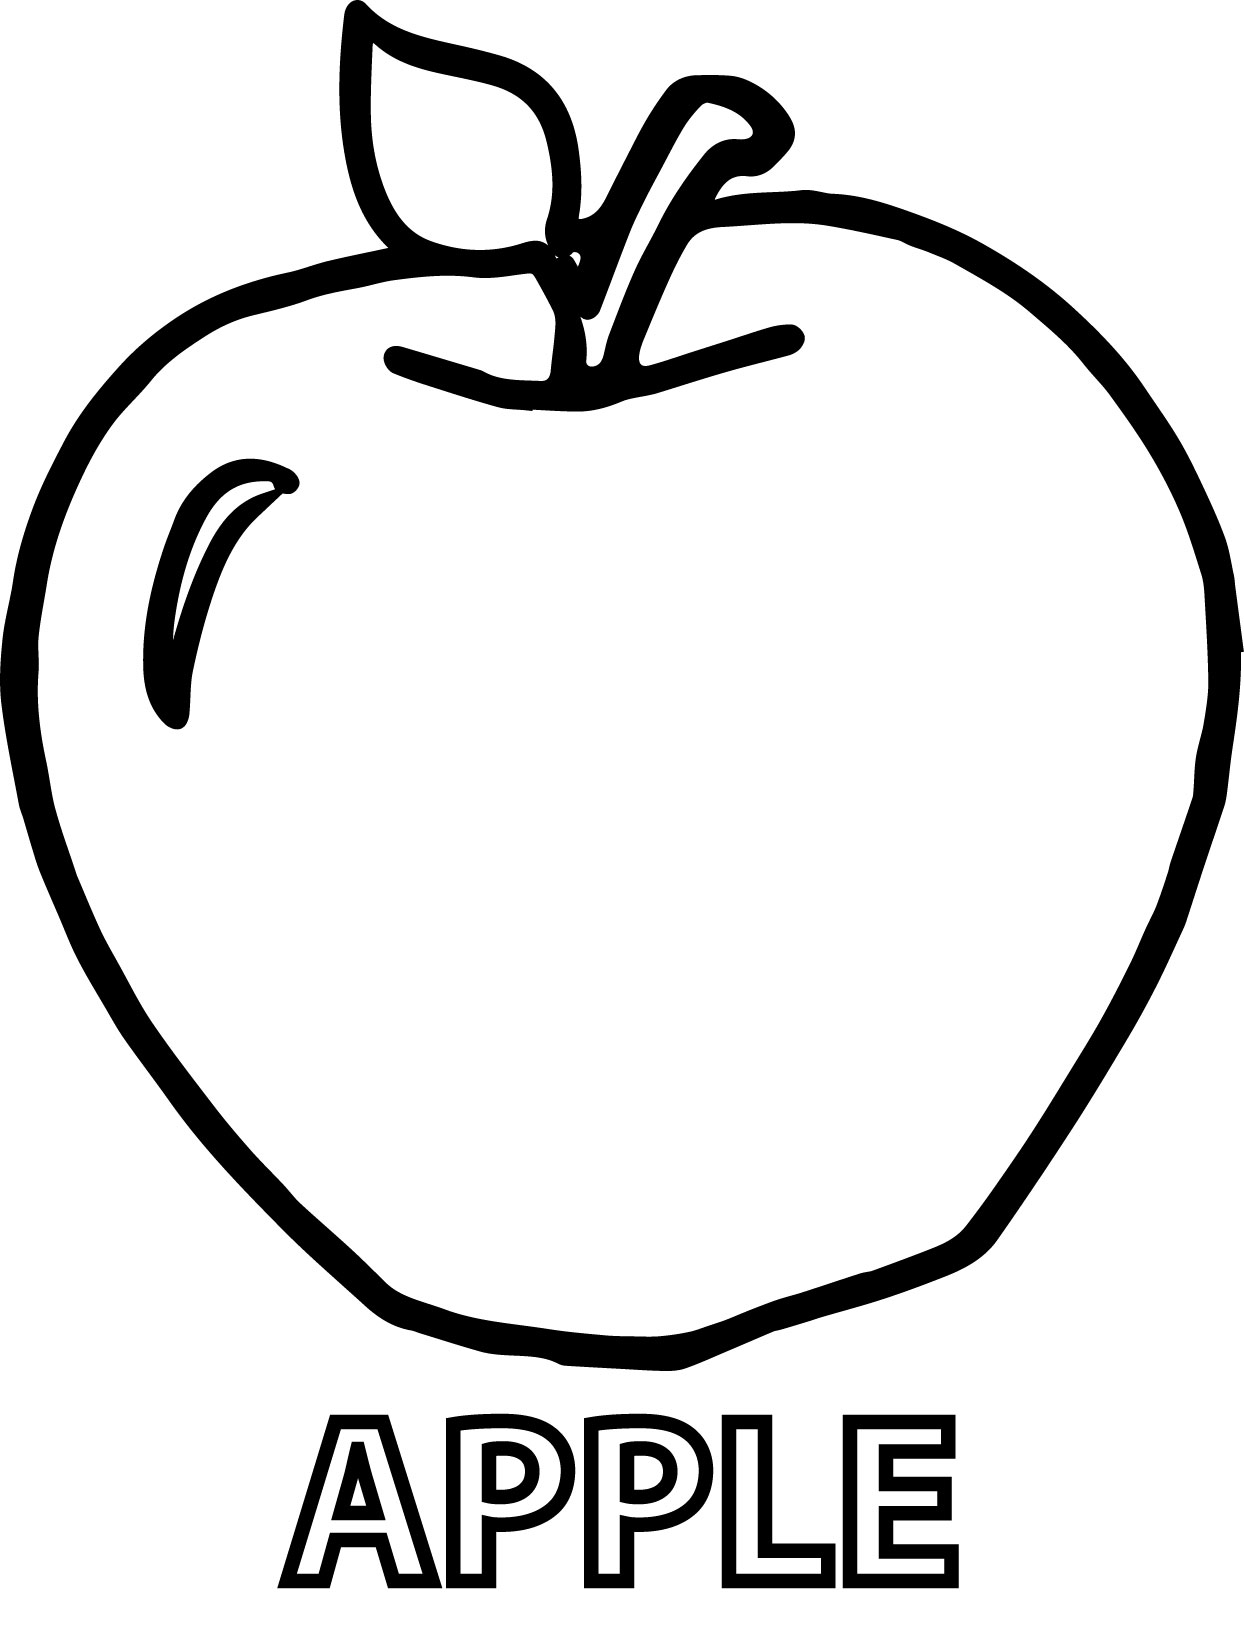 Apple Text And Apple Coloring Pages